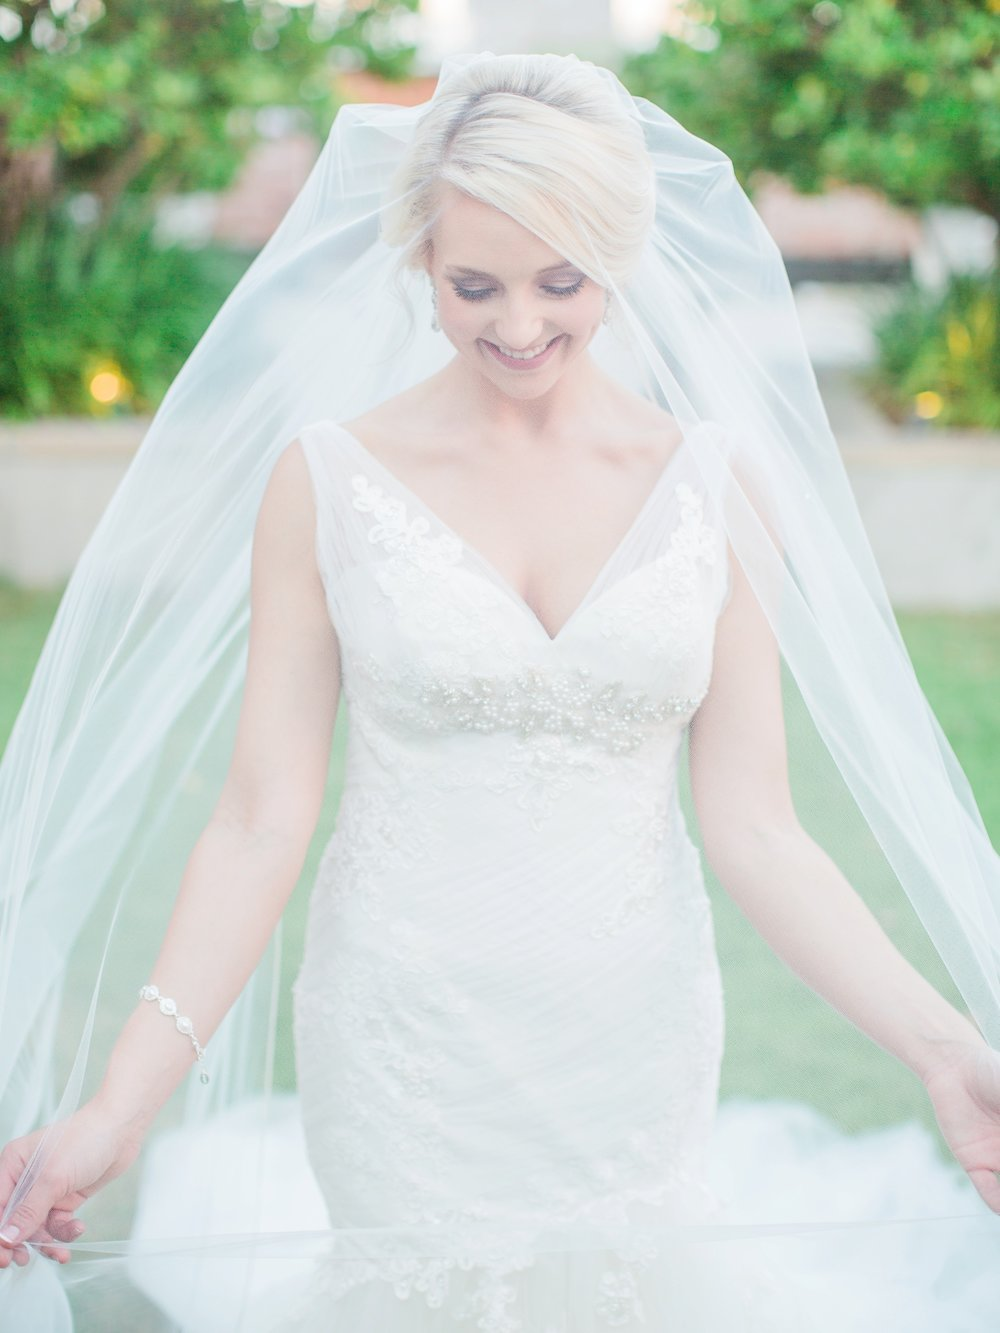 martha stewart wedding_fine art_beautiful bride veil_birmingham wedding photographer_montgomery alabama wedding photographer_destin rosemary alys beach 30A florida luxury wedding photographer